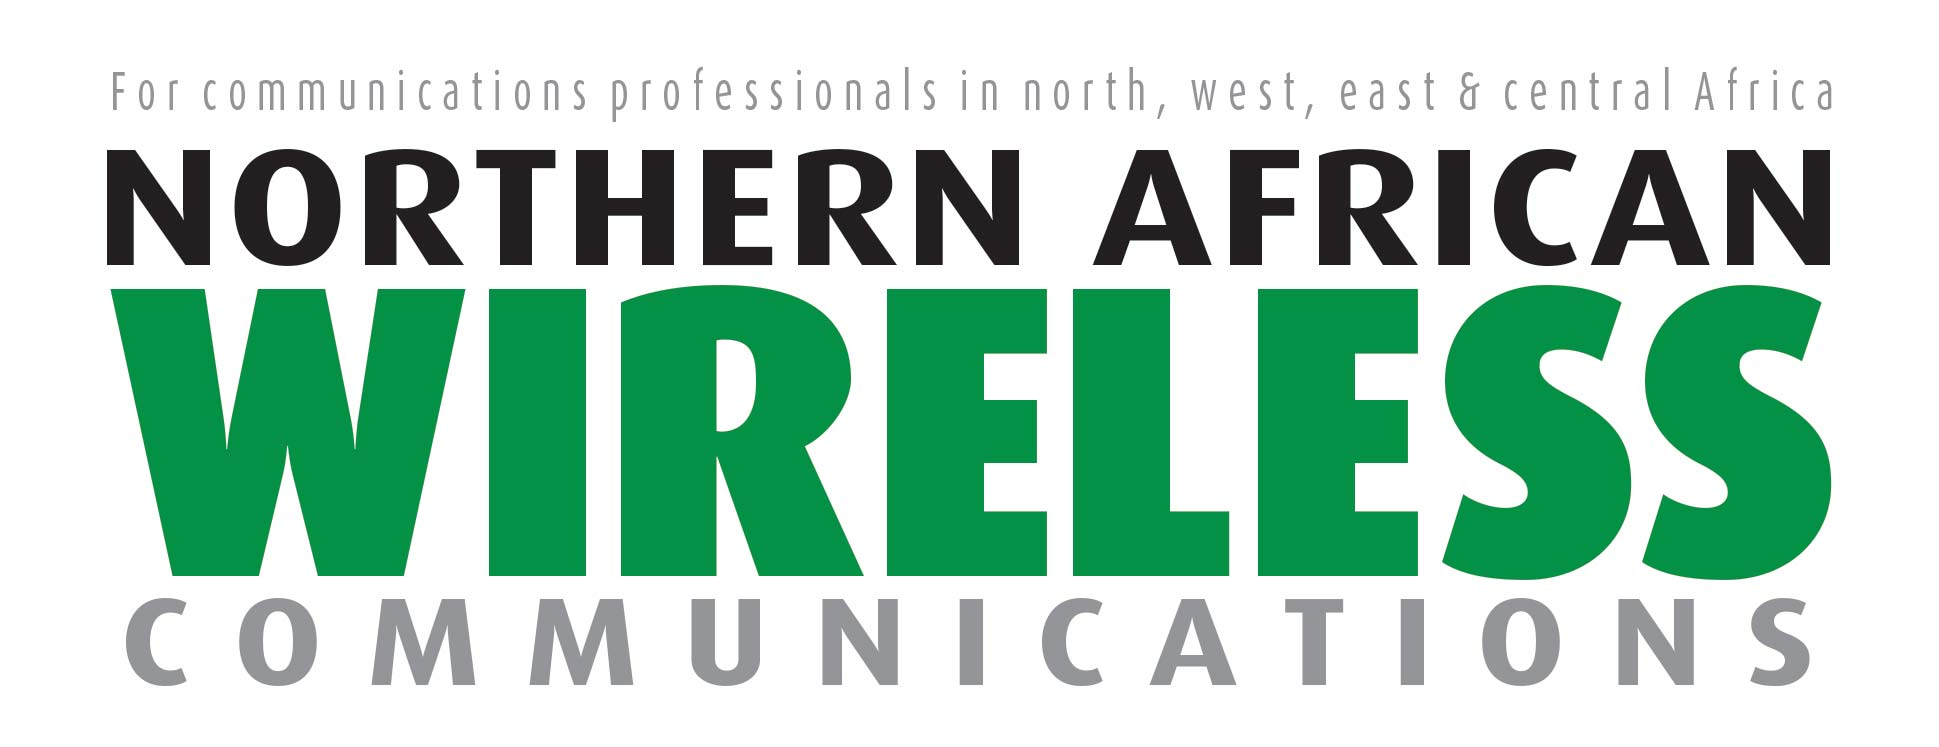 Northern African Wireless Communications